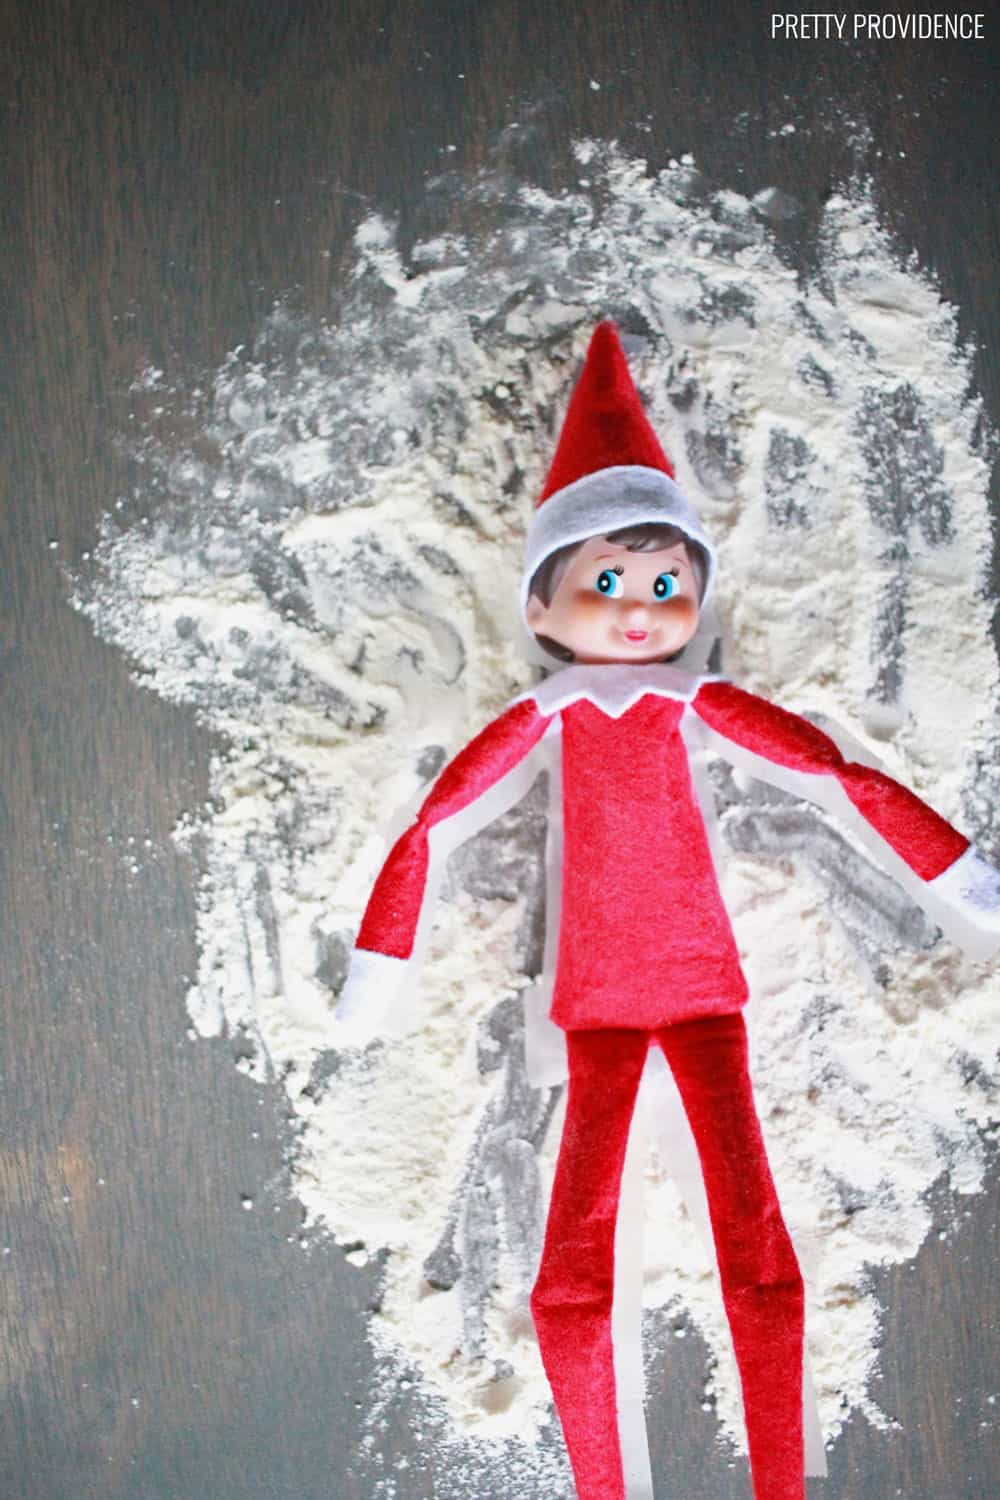 Elf on the shelf Mischievous Ideas - Flour